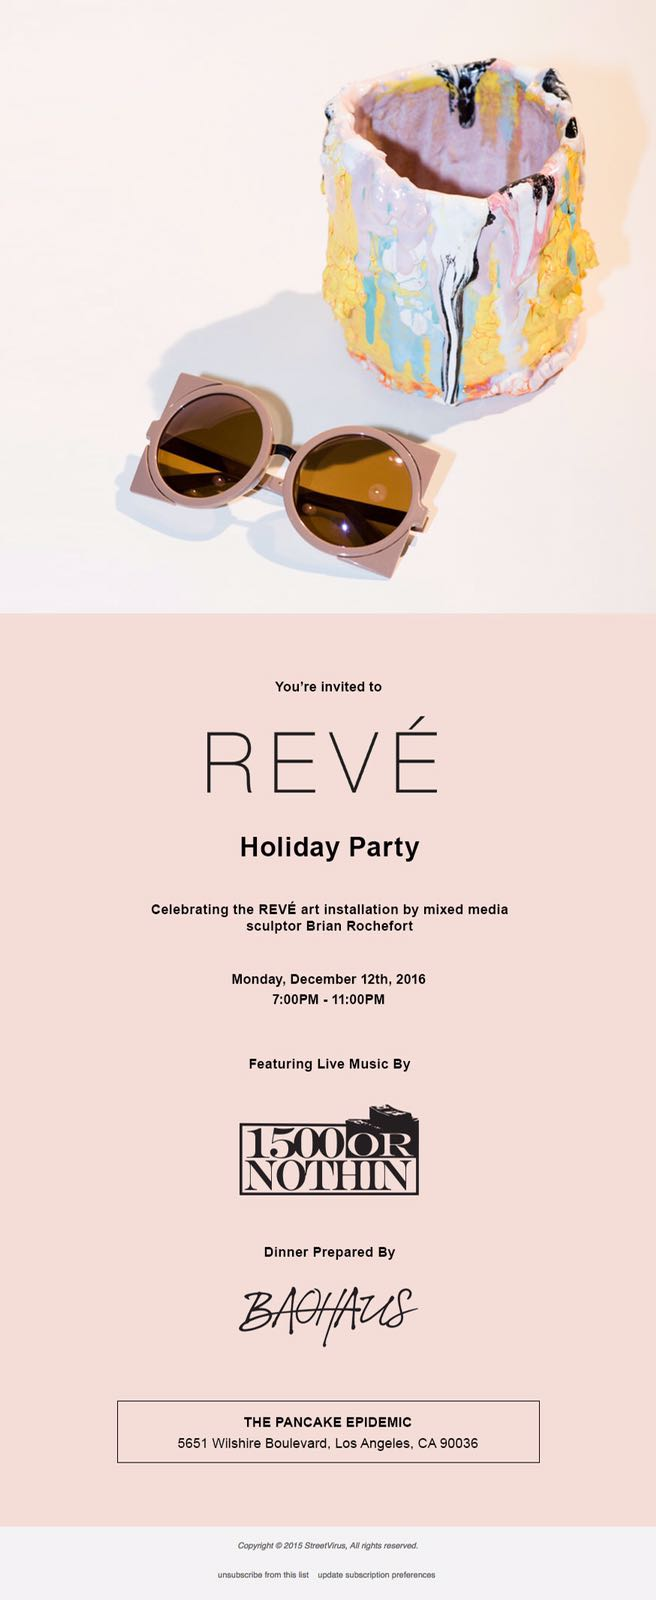 Reve holiday dinner performance collaboration with Pancake Epidemic and Brian Rochefort.